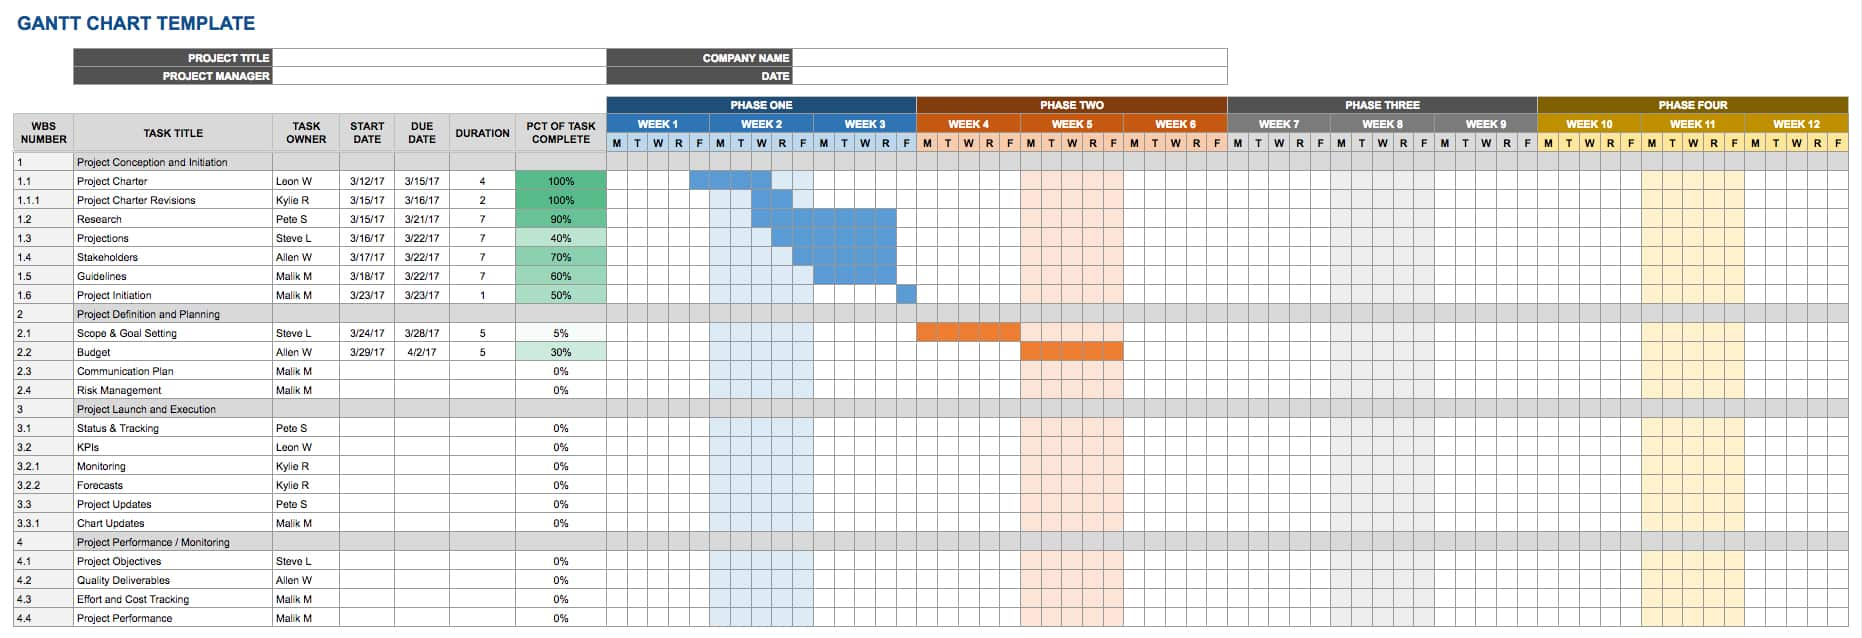 google sites faq template - download gantt chart excel help gantt chart excel template